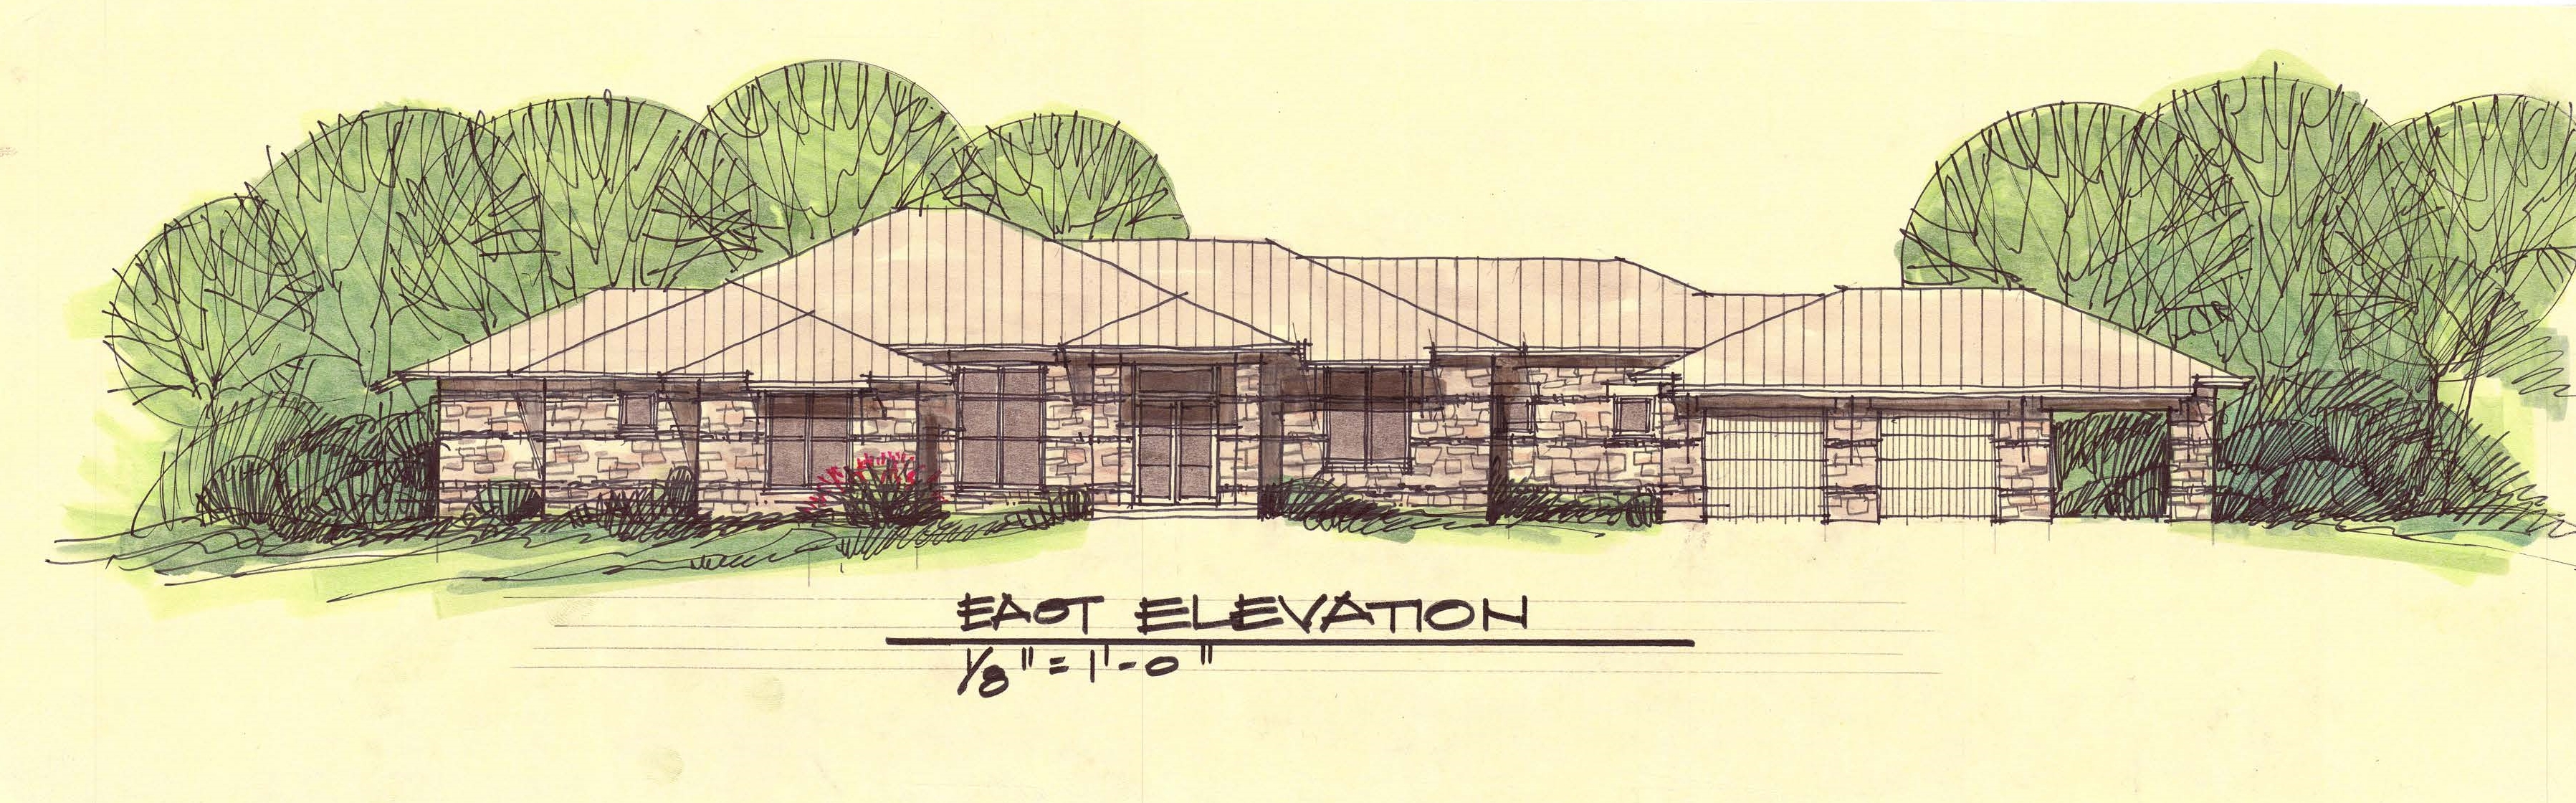 Sketch_Elevation_Home_Farm_House_Concept_by_Steve_Chambers_Stone_Ranch